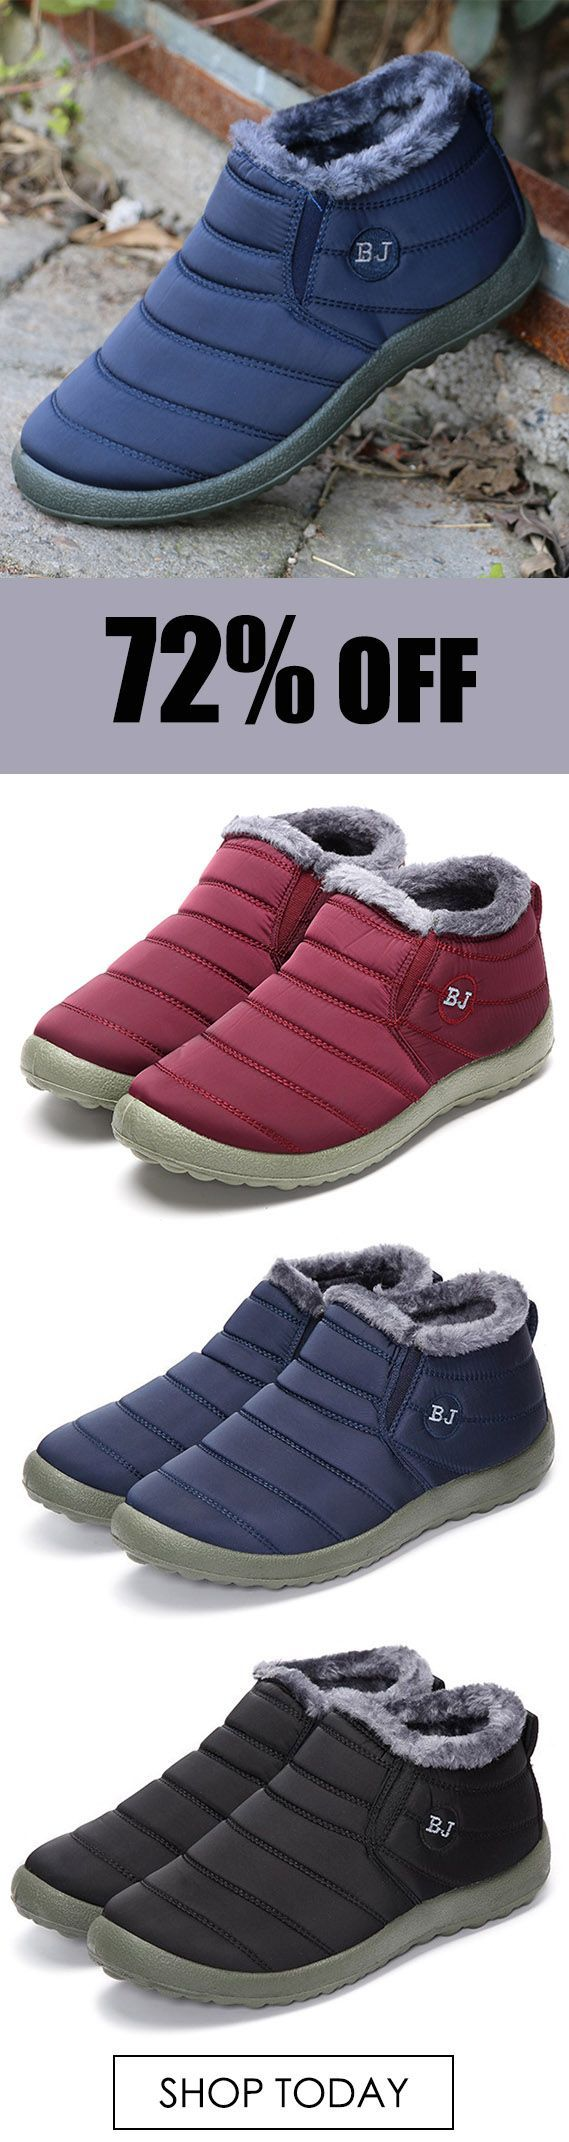 BJ Shoes Warm Wool Lining Flat Ankle Snow Boots For Women. #boots #shoes